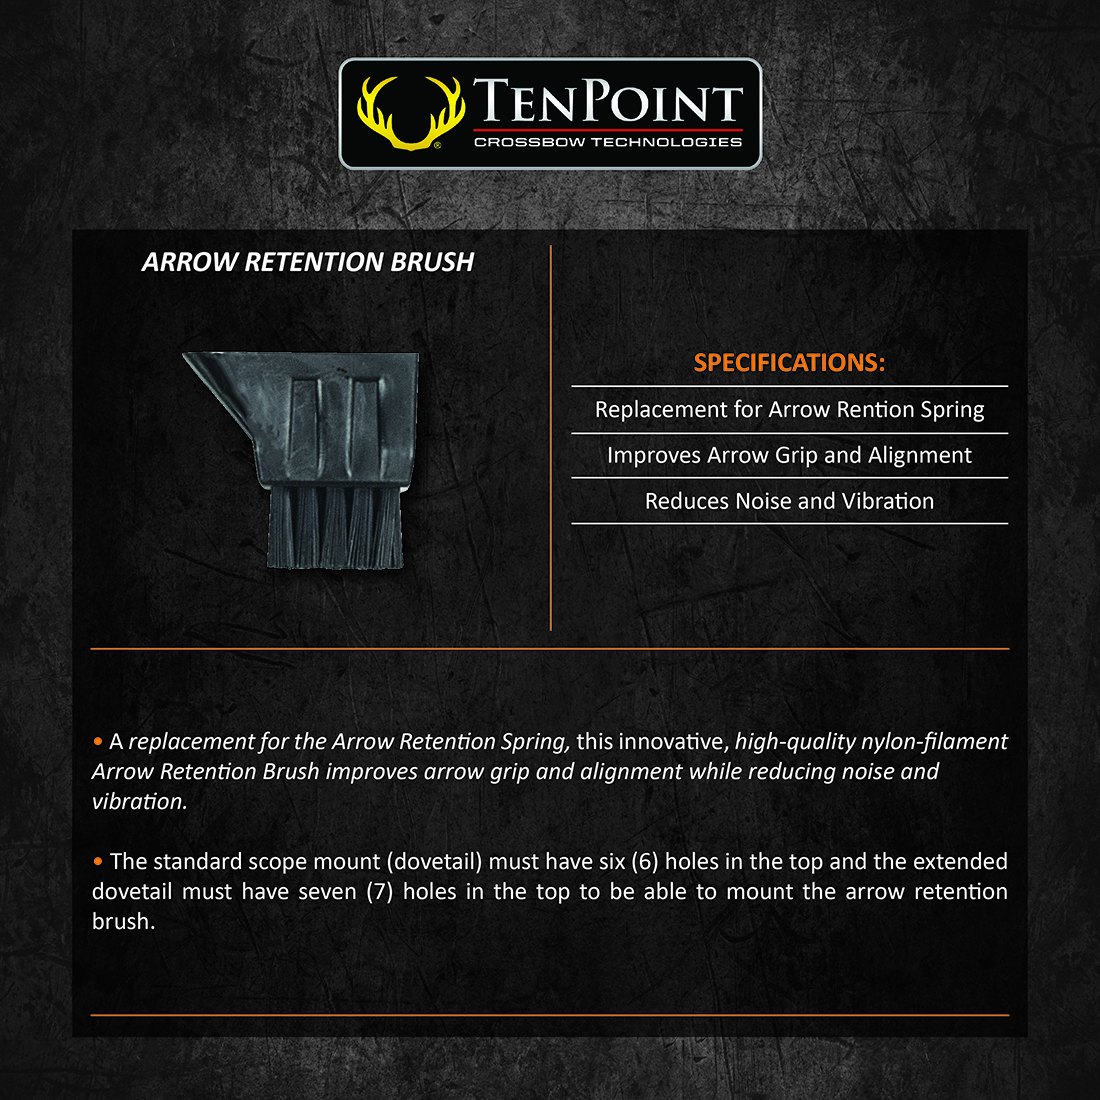 TenPoint_Arrow_Retention_Brush_Product_Description